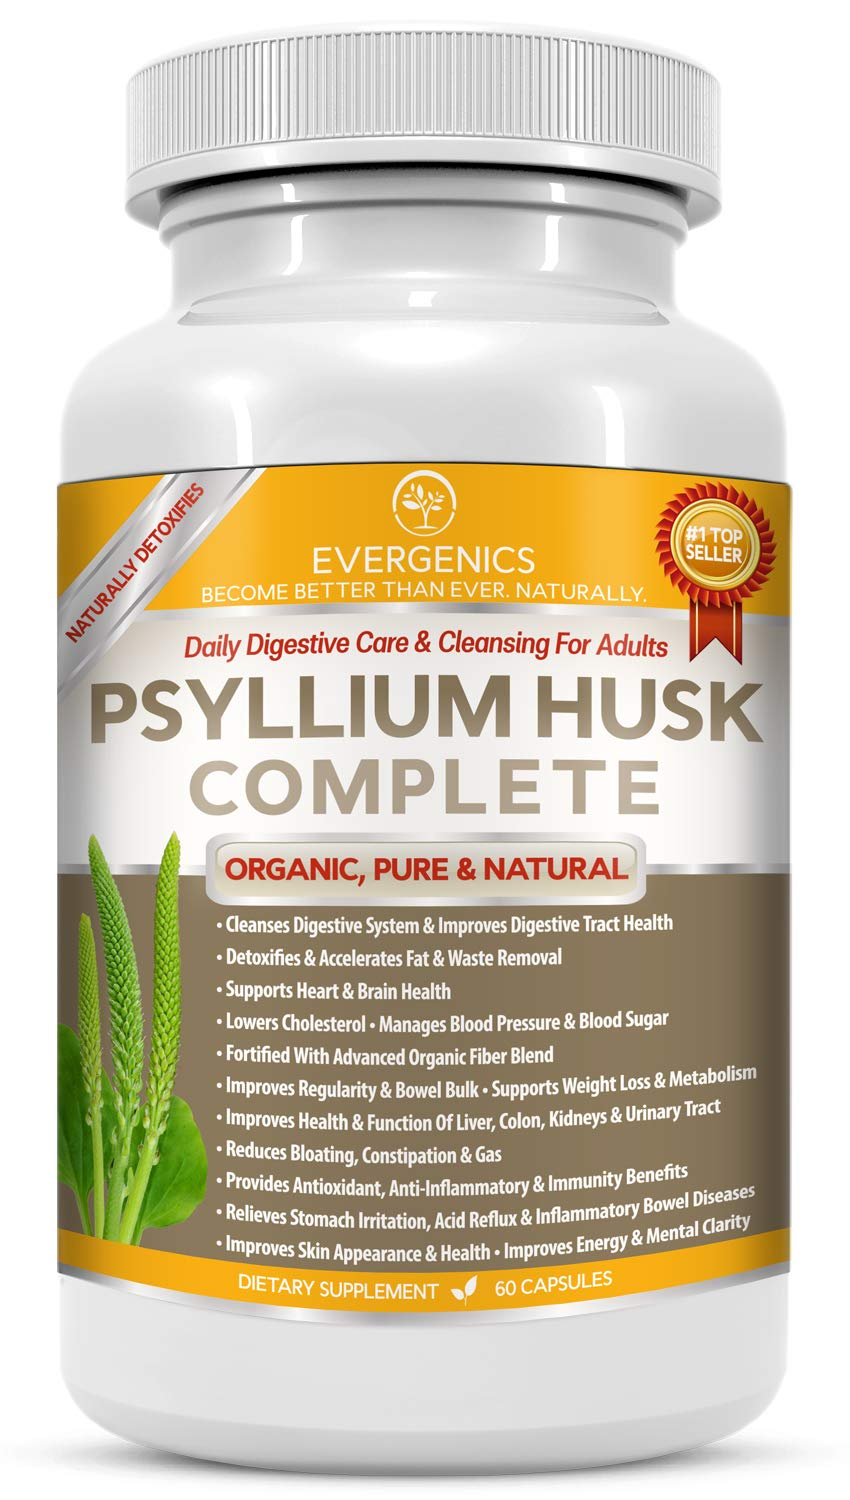 Evergenics Organic Psyllium Husk. Complete Daily Digestive Cleansing. Improves Heart, Digestive and Total Health. Flushes Cholesterol, Toxins and Fat. with Fiber, Digestive Enzymes and Prebiotics. by Evergenics Health and Personal Care